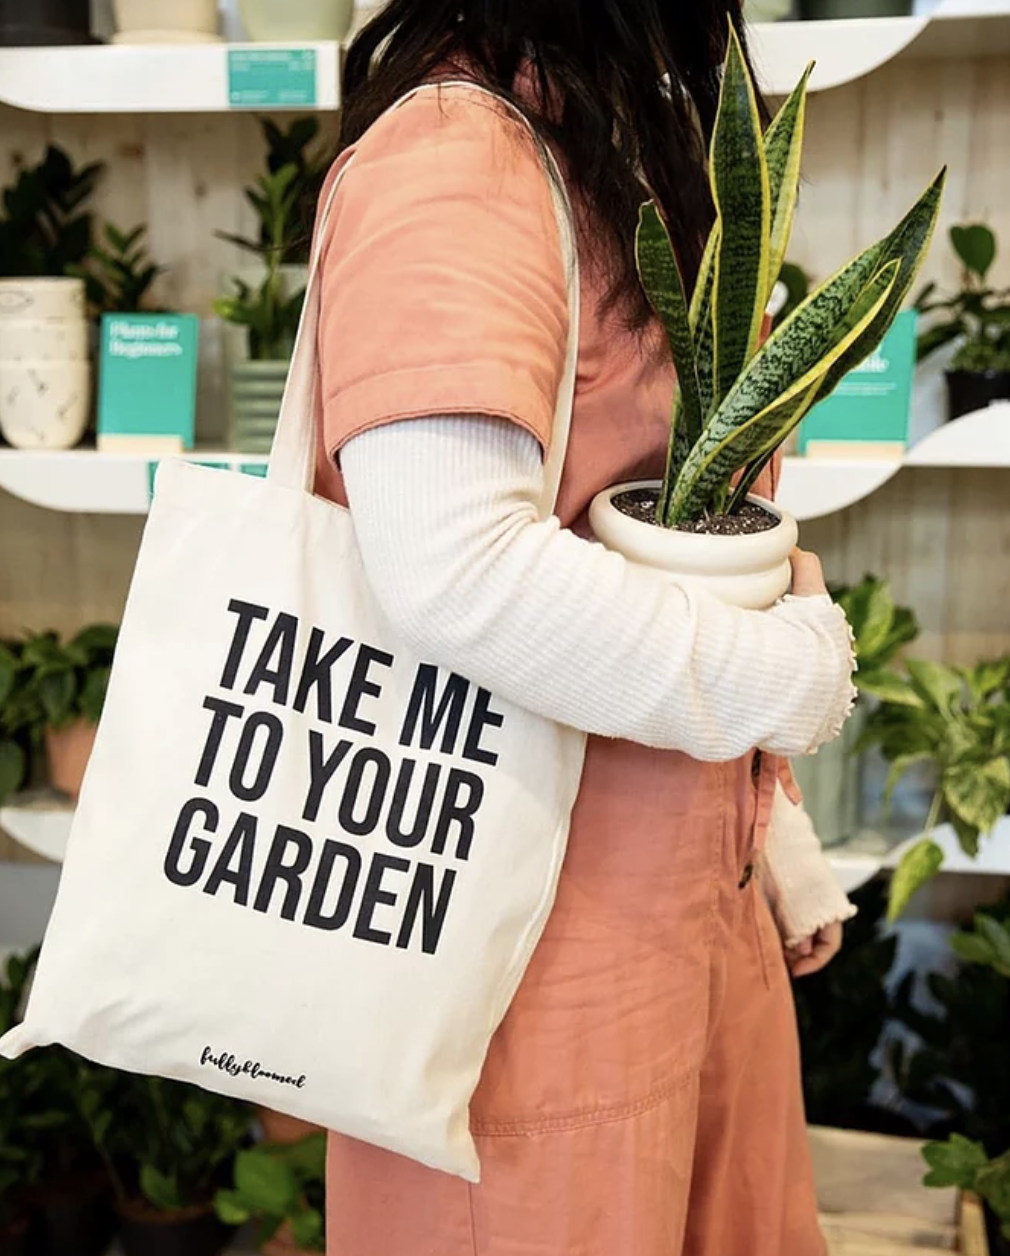 """a model wearing a tan tote bag that says """"take me to your garden"""""""